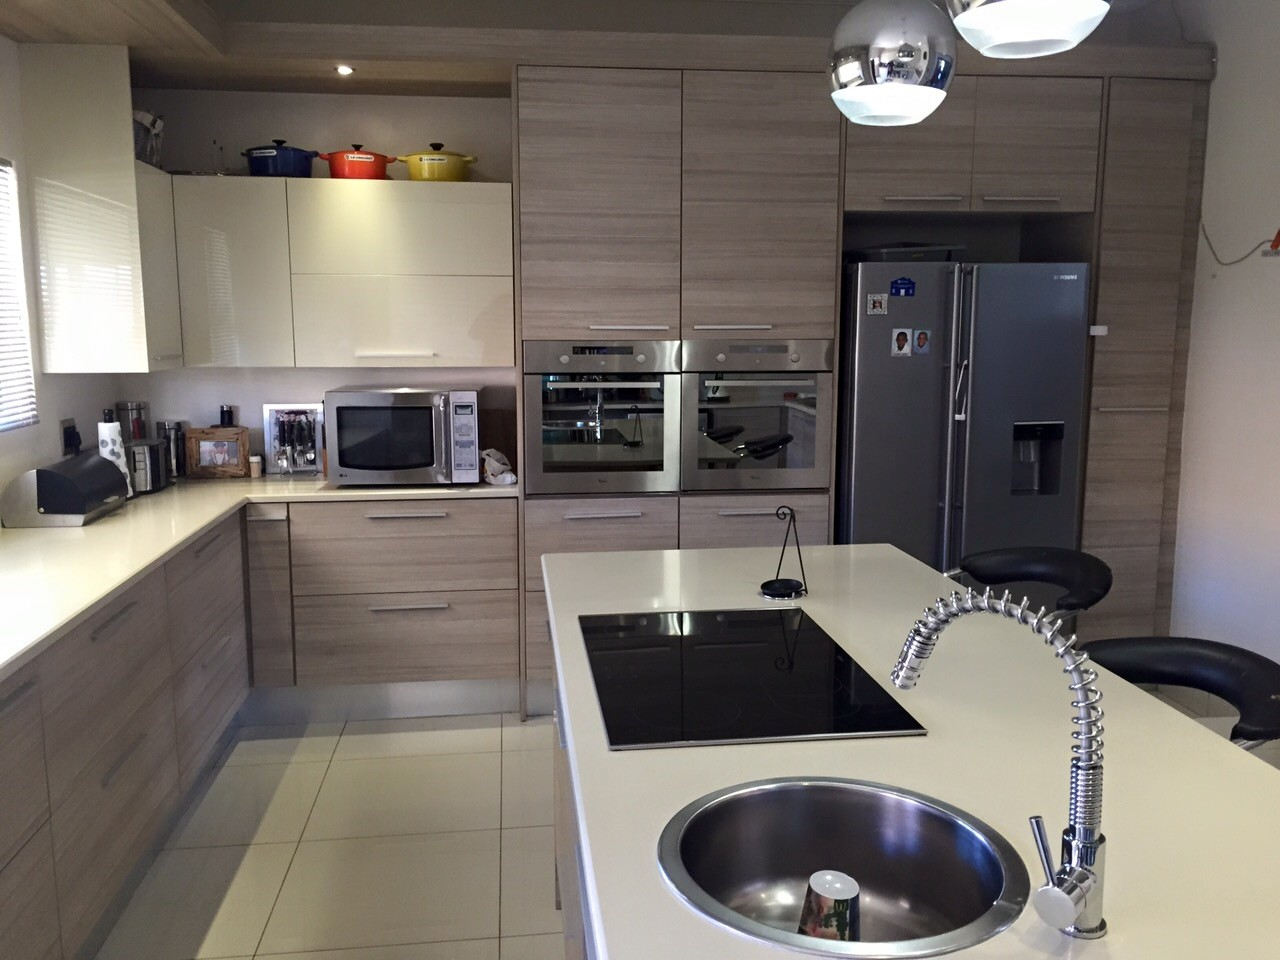 Appleberry design appleberry design kitchen design company in polokwane expert designers of Kitchen designs pictures free